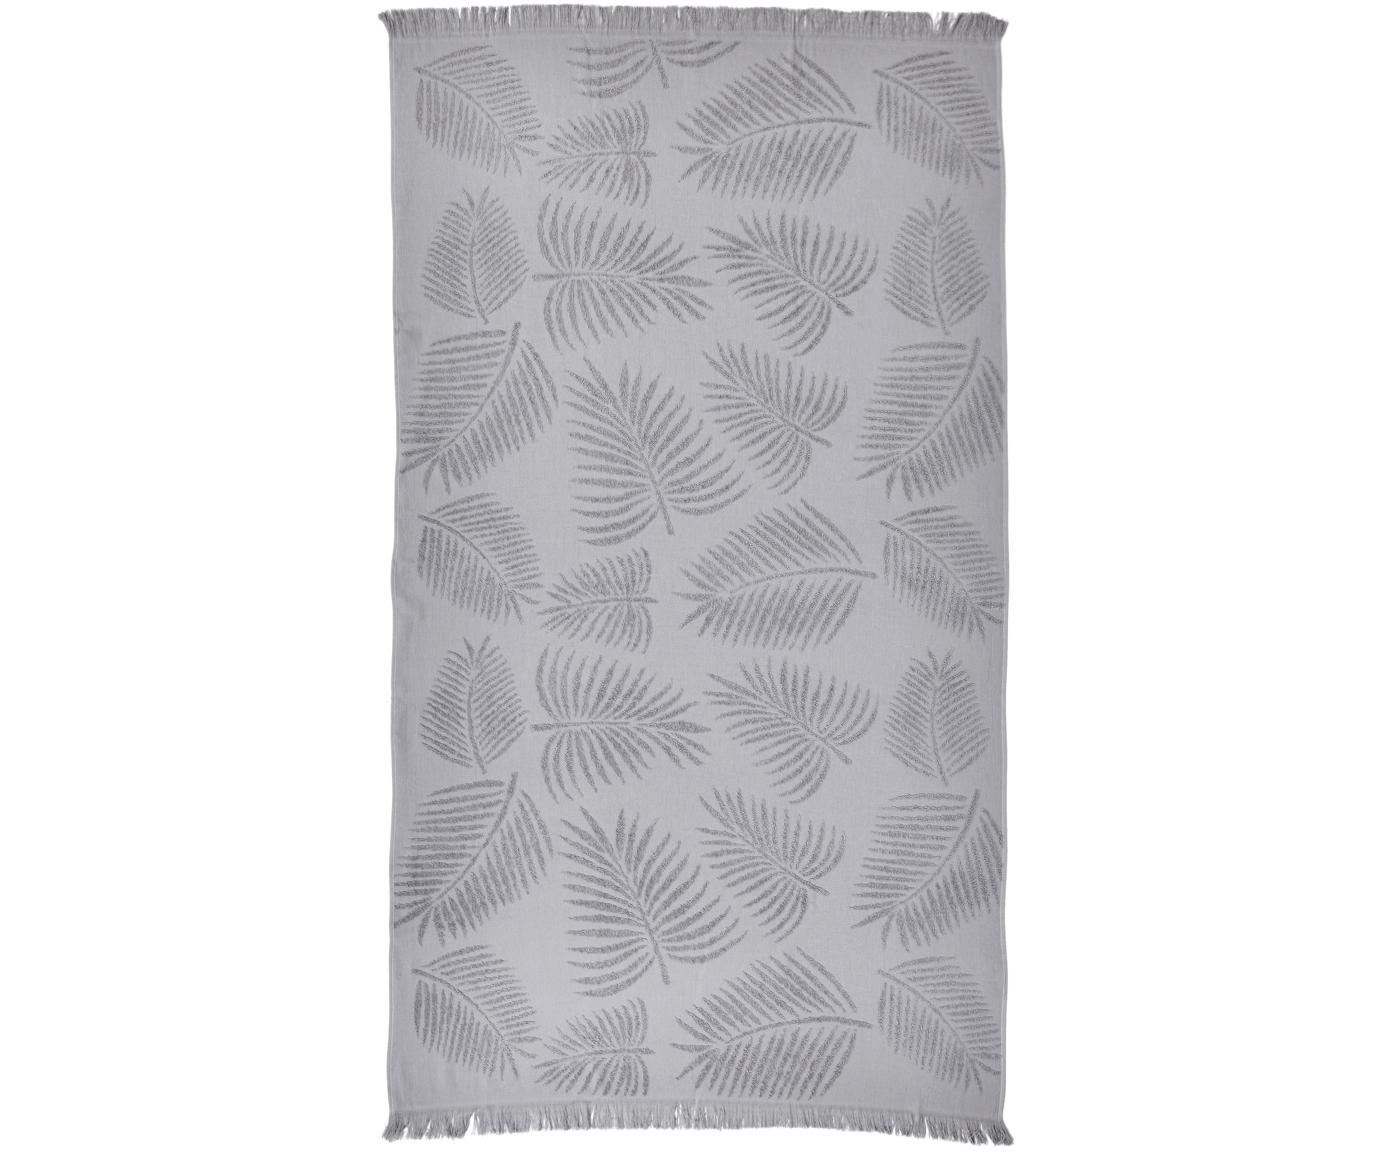 Toalla de playa Capri Palm Leaves, Gris plata, An 90 x L 160 cm